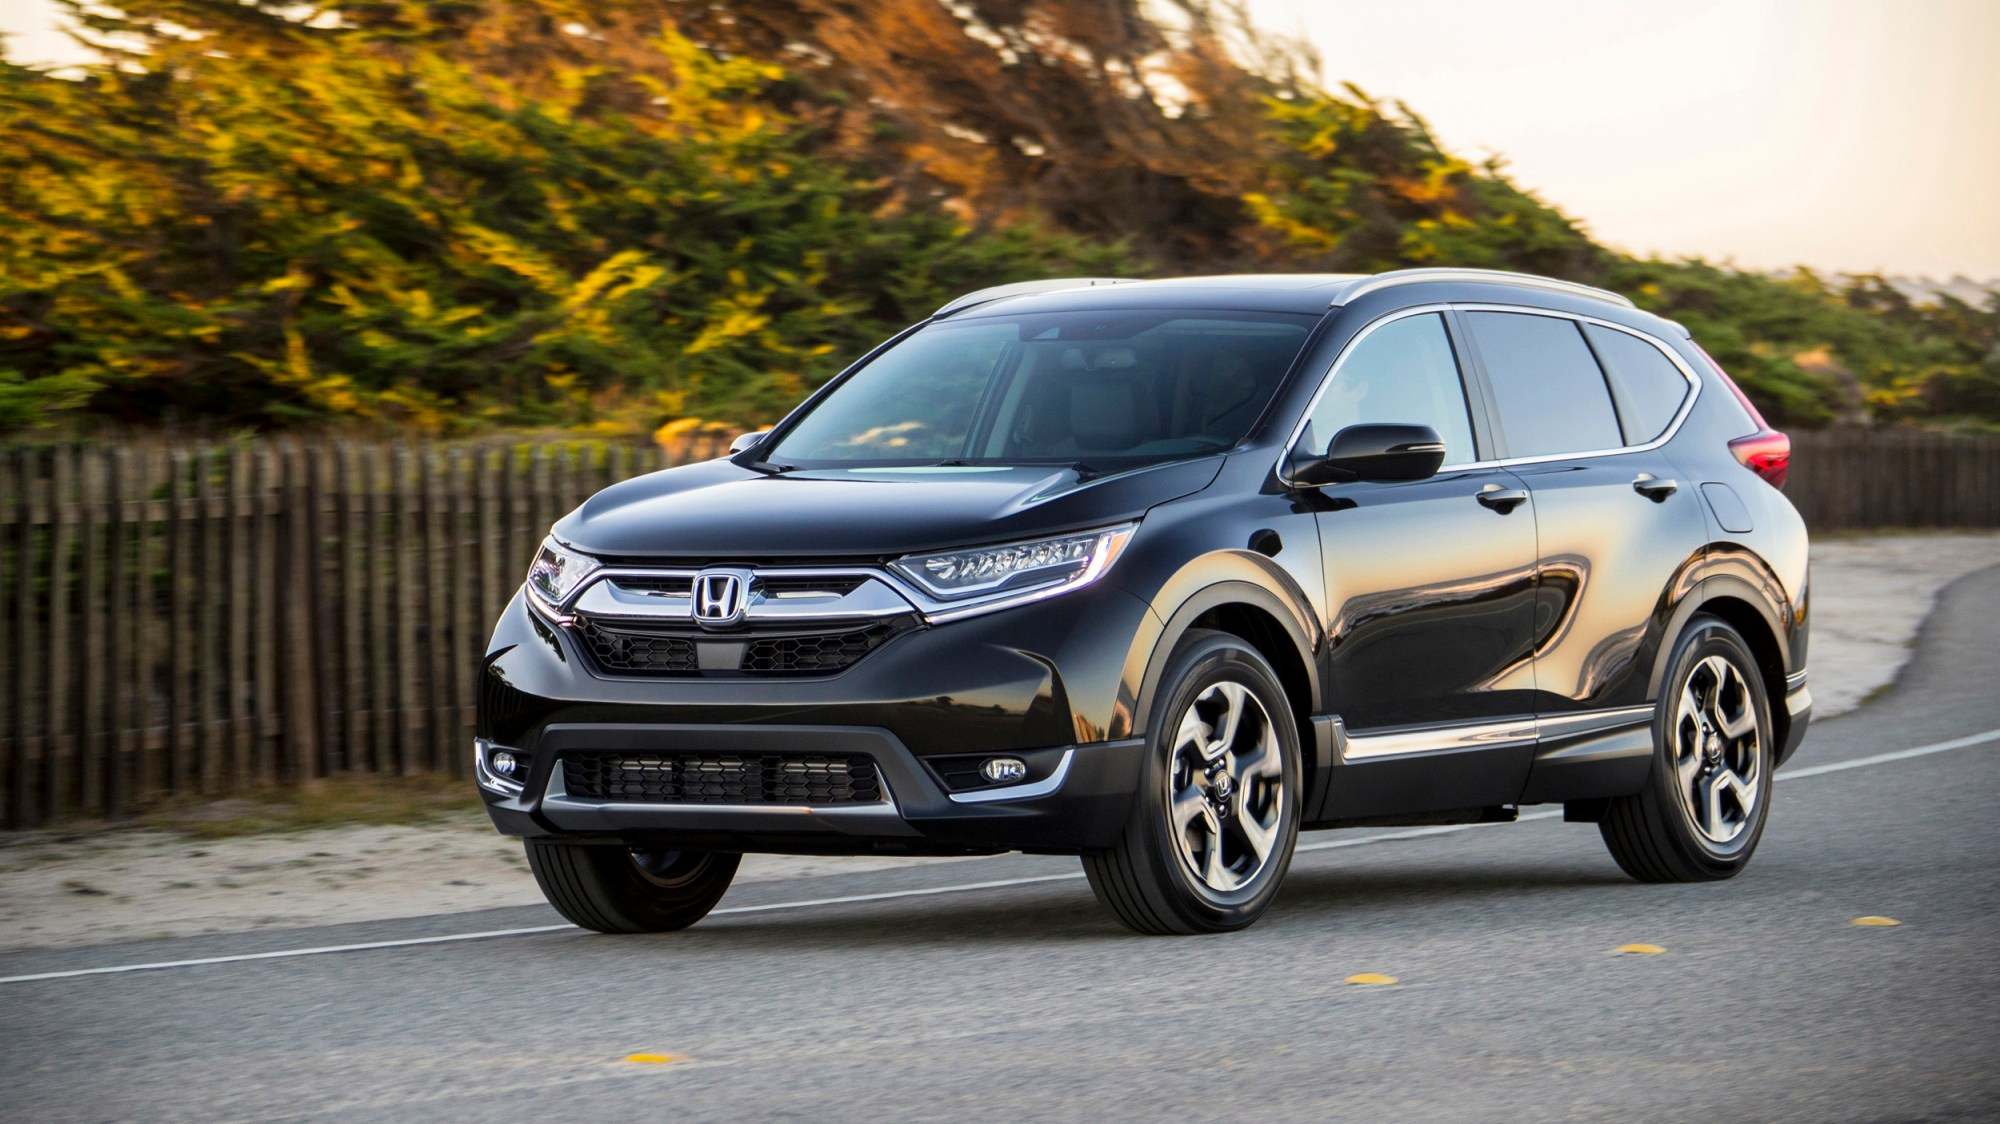 hight resolution of 2019 honda cr v review and buying guide everything you need to know